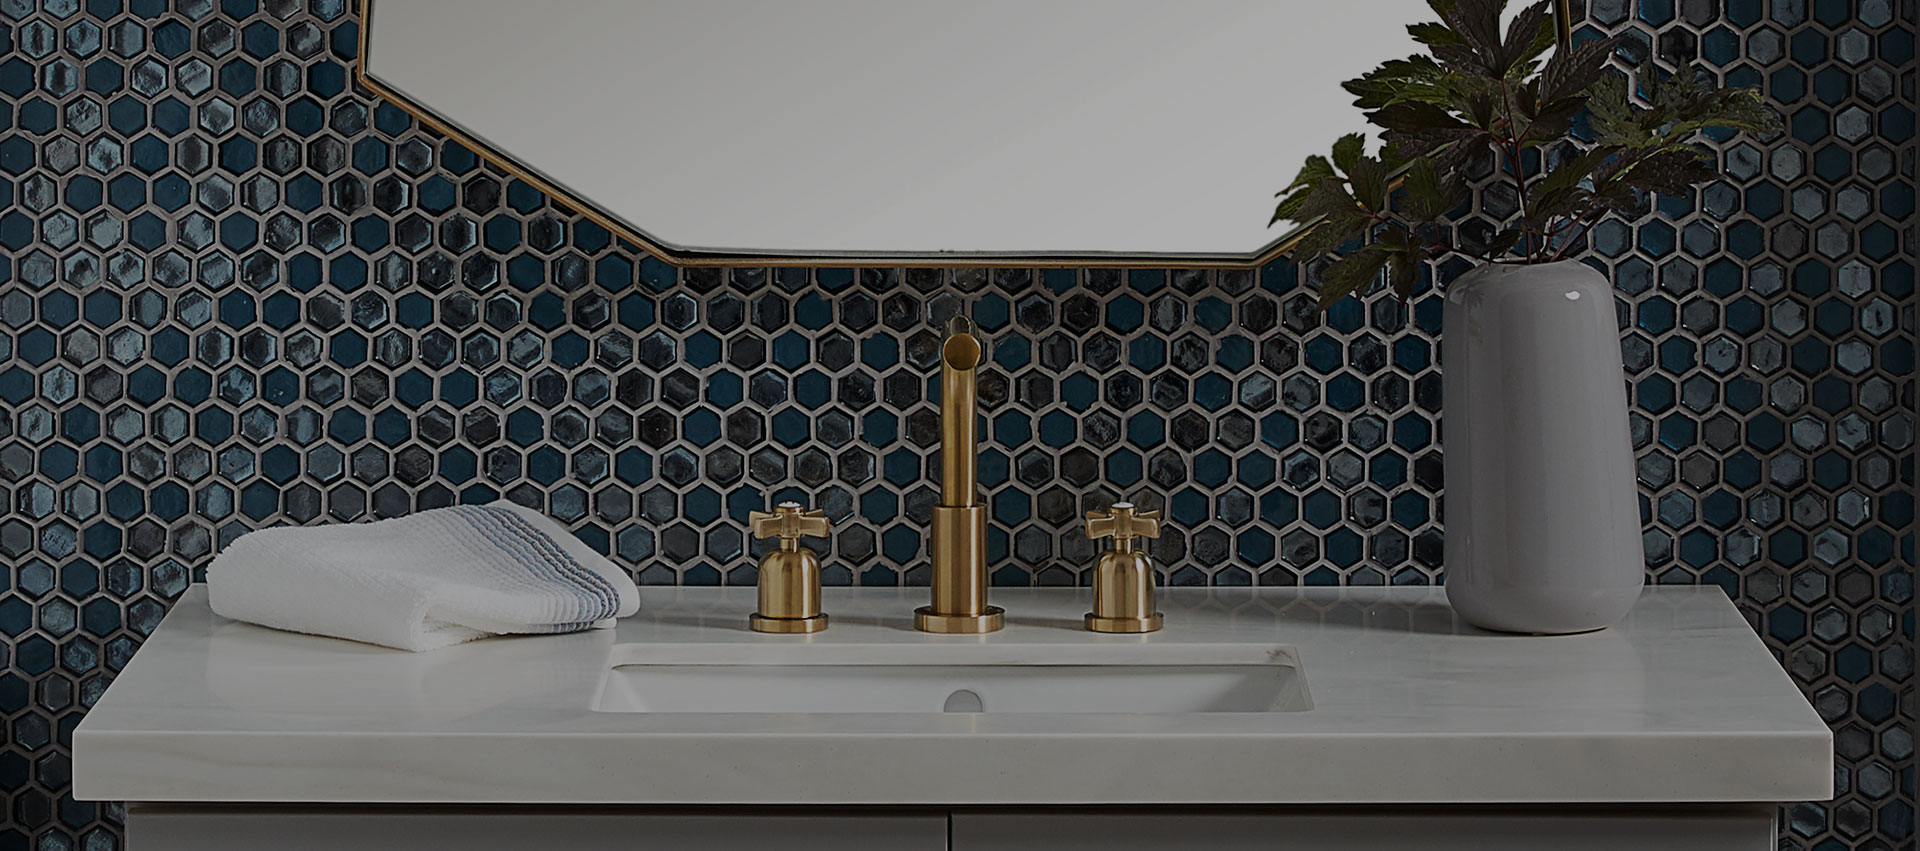 5 Top Tile Trends for 2020